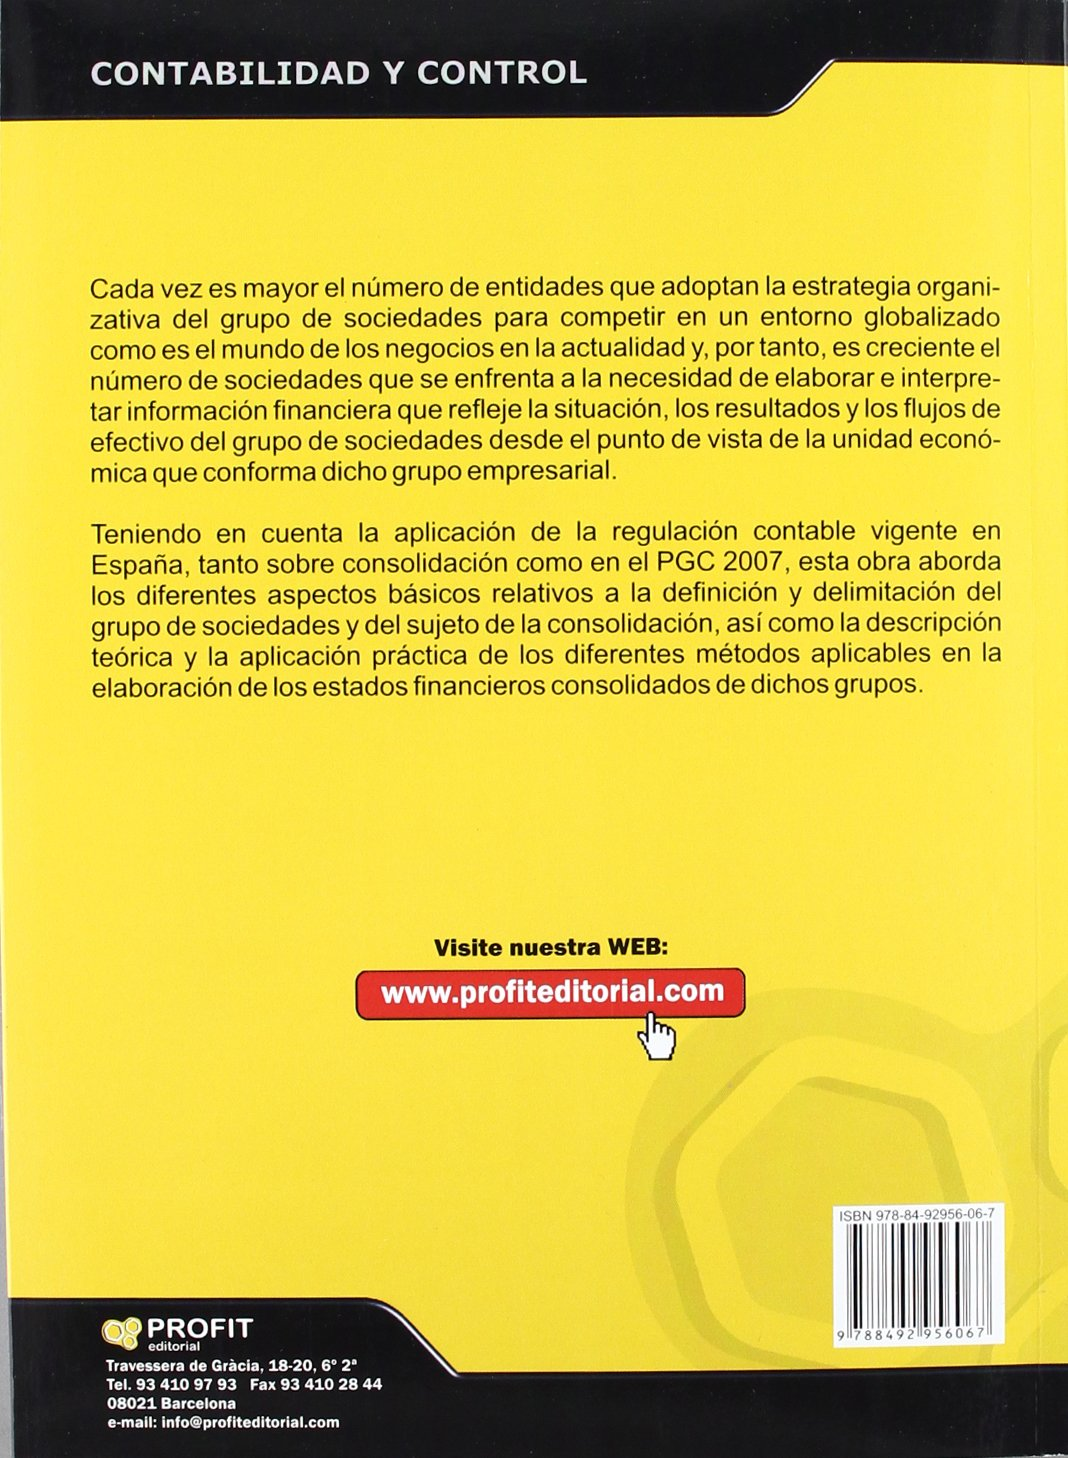 CONSOLIDACIÓN DE ESTADOS FINANCIEROS (Spanish Edition): Jose Luis Boned, Jesús José Angla: 9788492956067: Amazon.com: Books